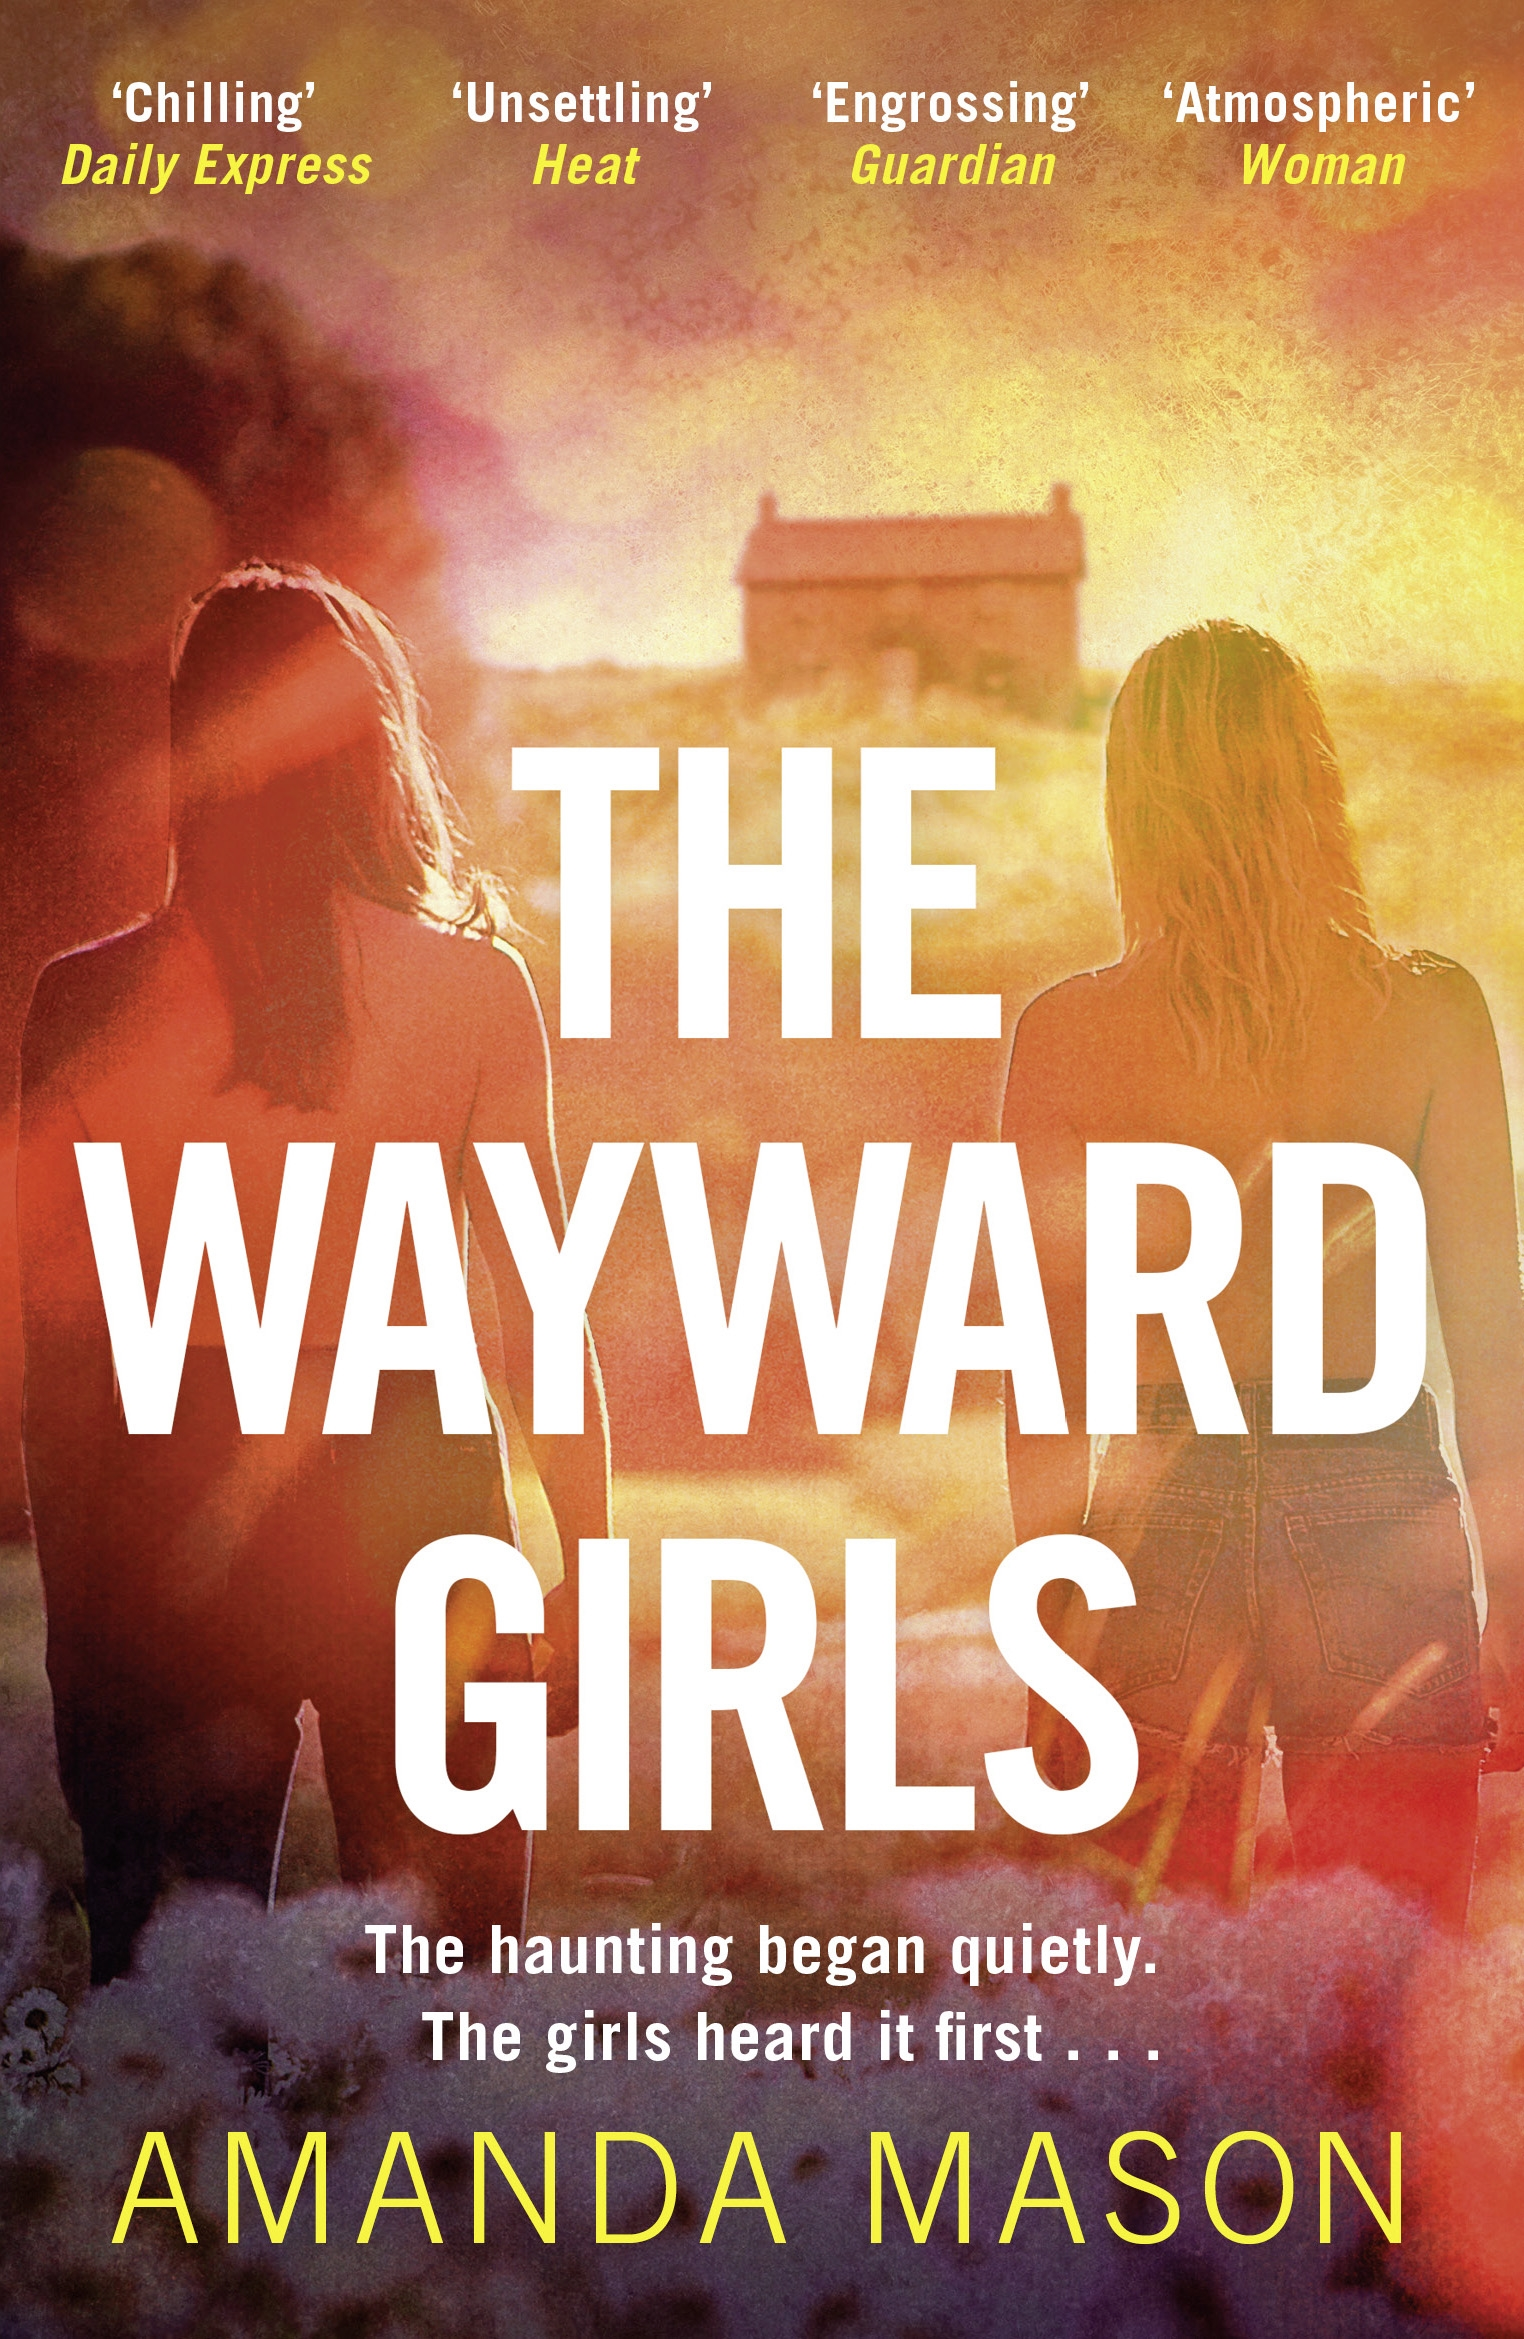 Image result for publisher the wayward girls